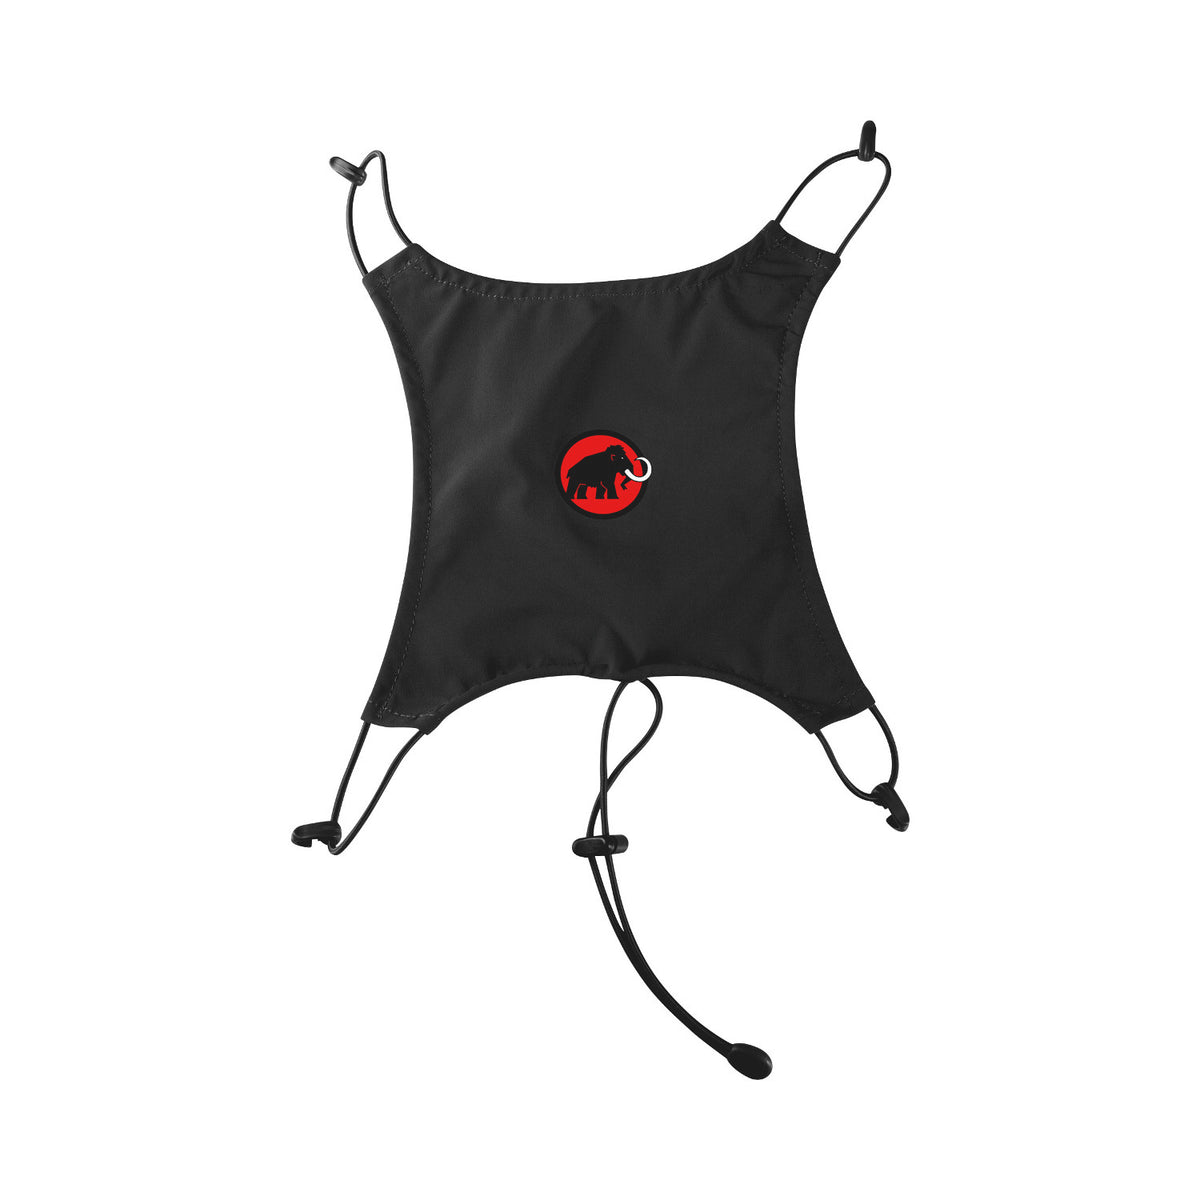 Mammut Helmet Holder shown opened out, in black colour